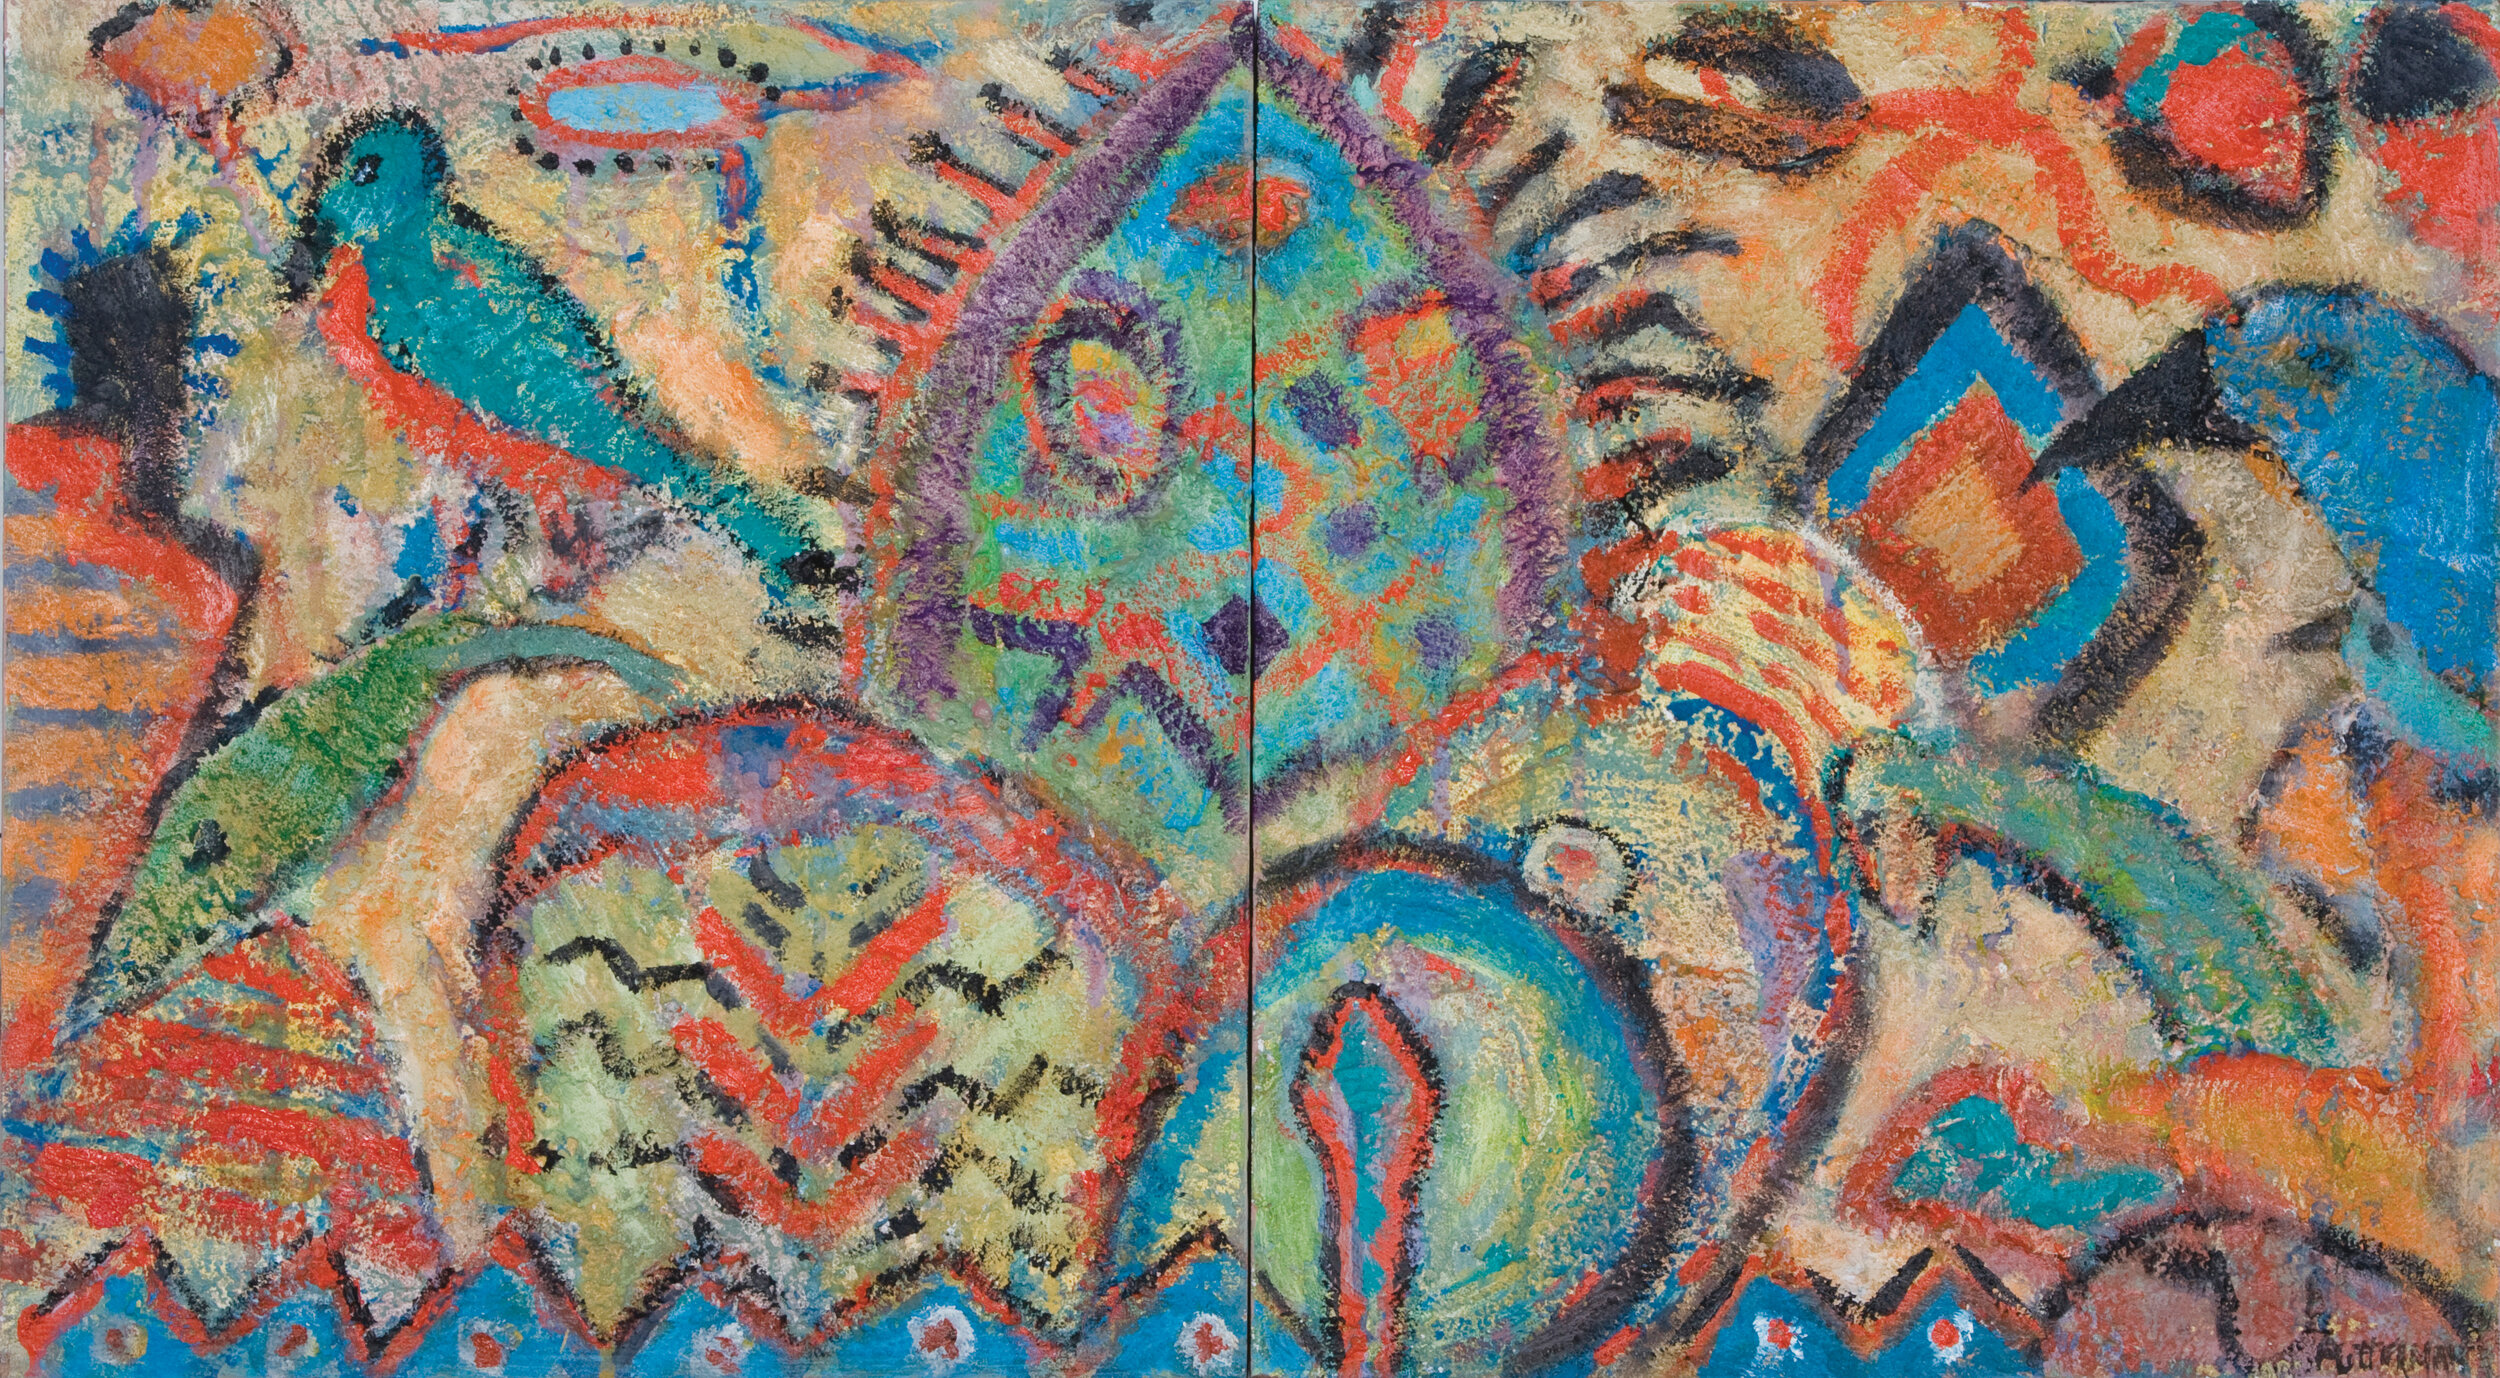 """Metaphoric Fables, 2009, Acrylic and Sand on Wood (Diptych), 20""""x36""""  2 panels of paintings on wood describing birds, trees in simplified style and multicolor on tan background"""